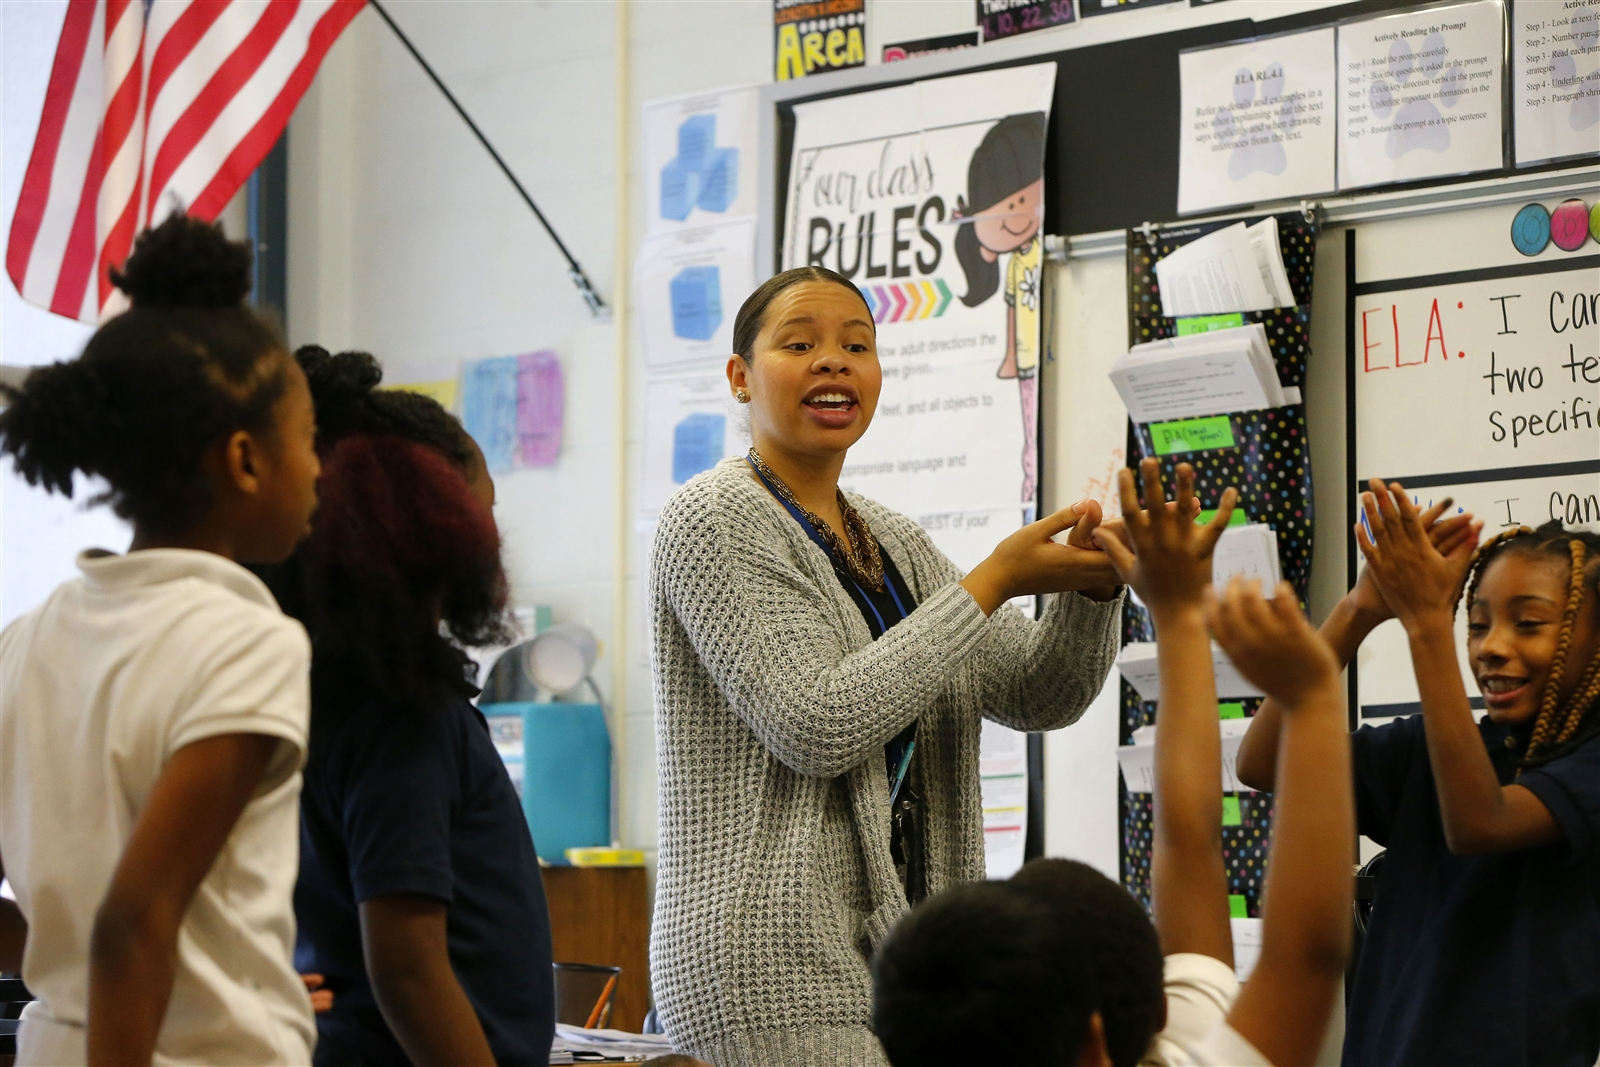 Fourth grade teacher Tiffany Bryant works with her students on a science lesson at BUILD Academy in Buffalo.